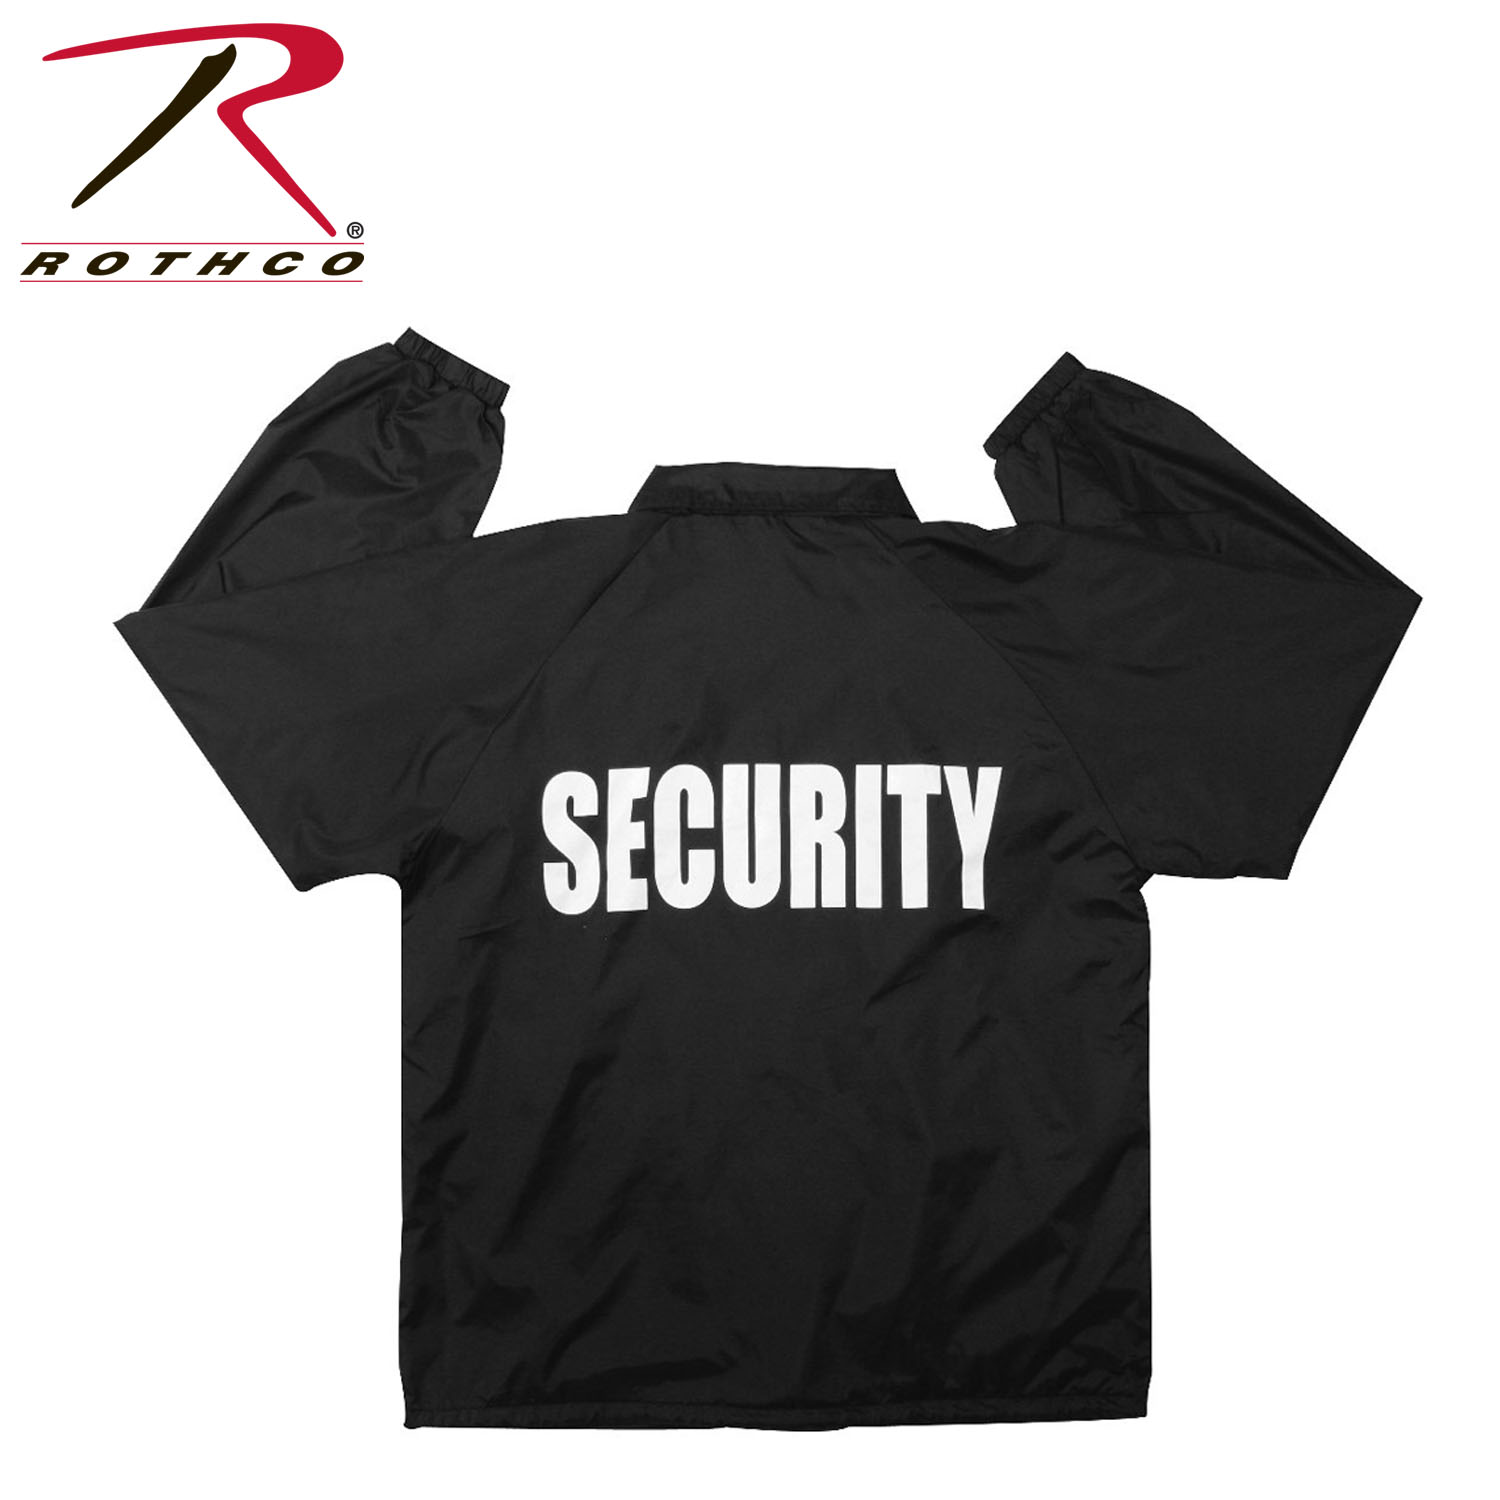 Rothco Lined Coaches Jacket / Security - Black, 3X-Large